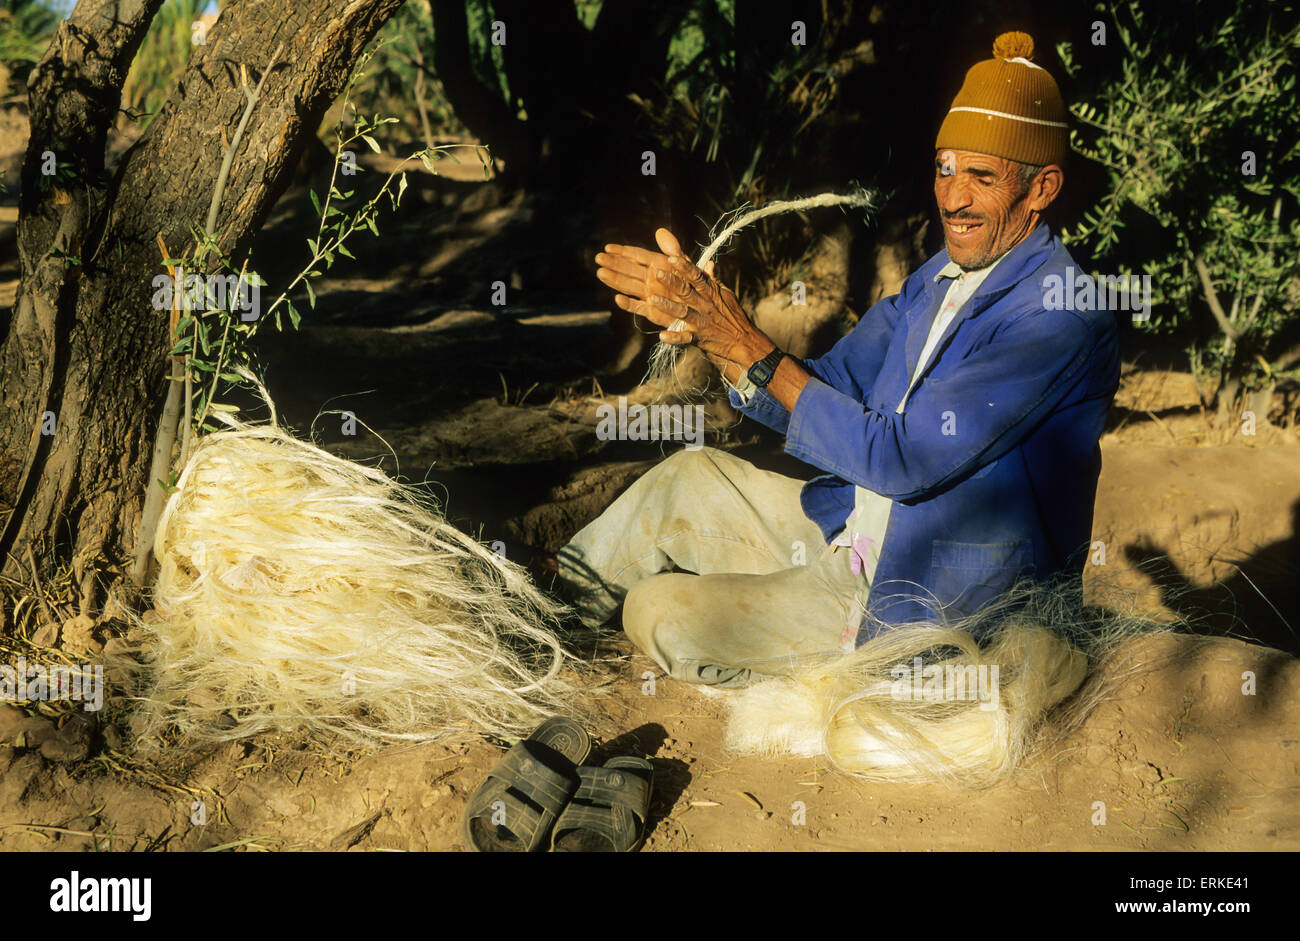 Berber making rope out of wood fibre, Skoura oasis, Dadès Valley, Morocco - Stock Image